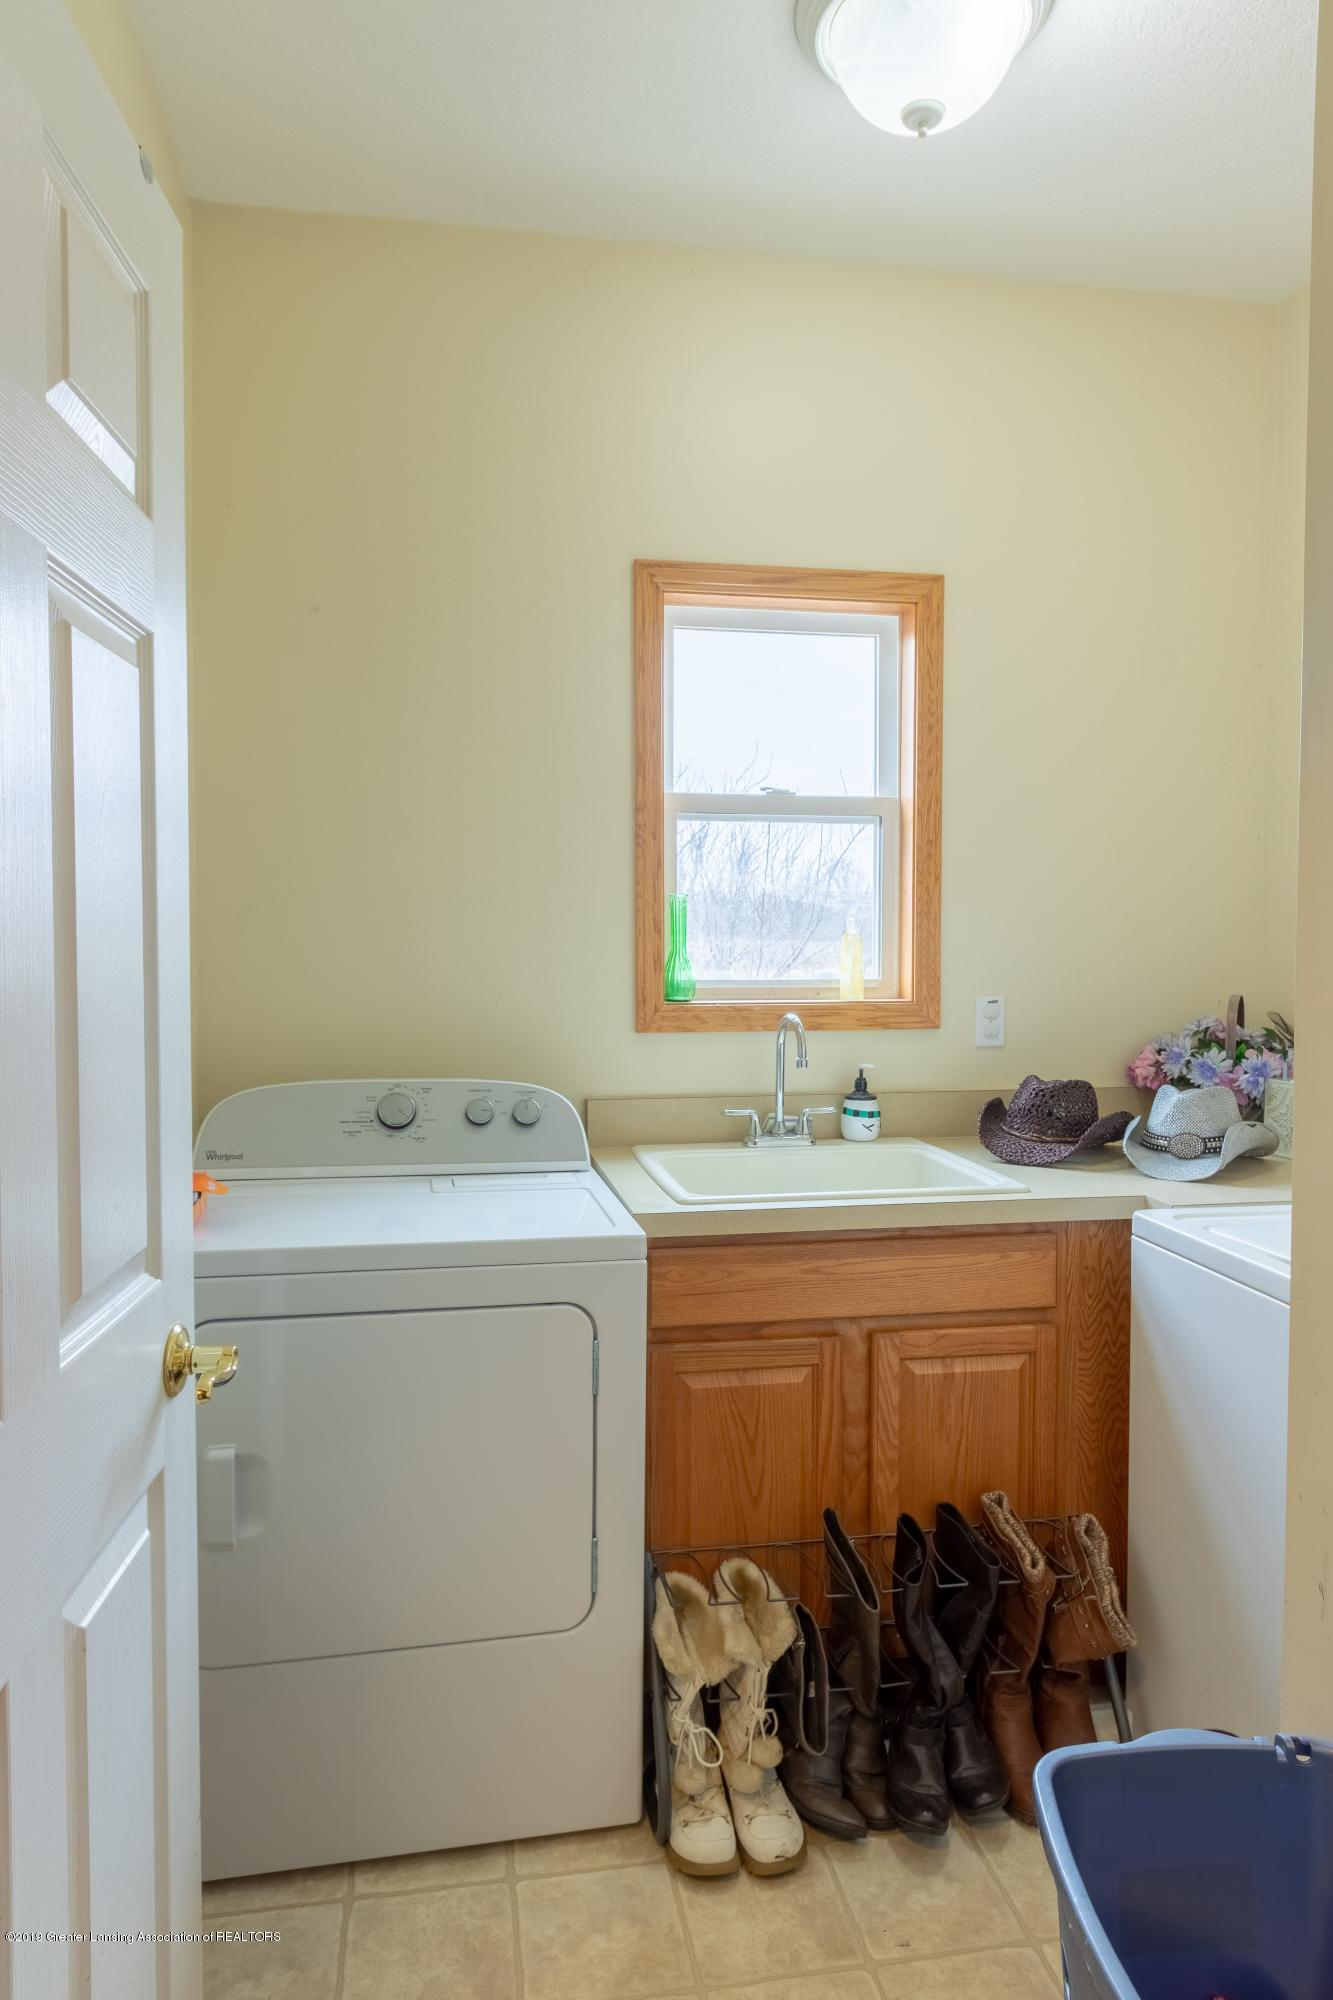 6121 W Centerline Rd - Laundry Room - 11